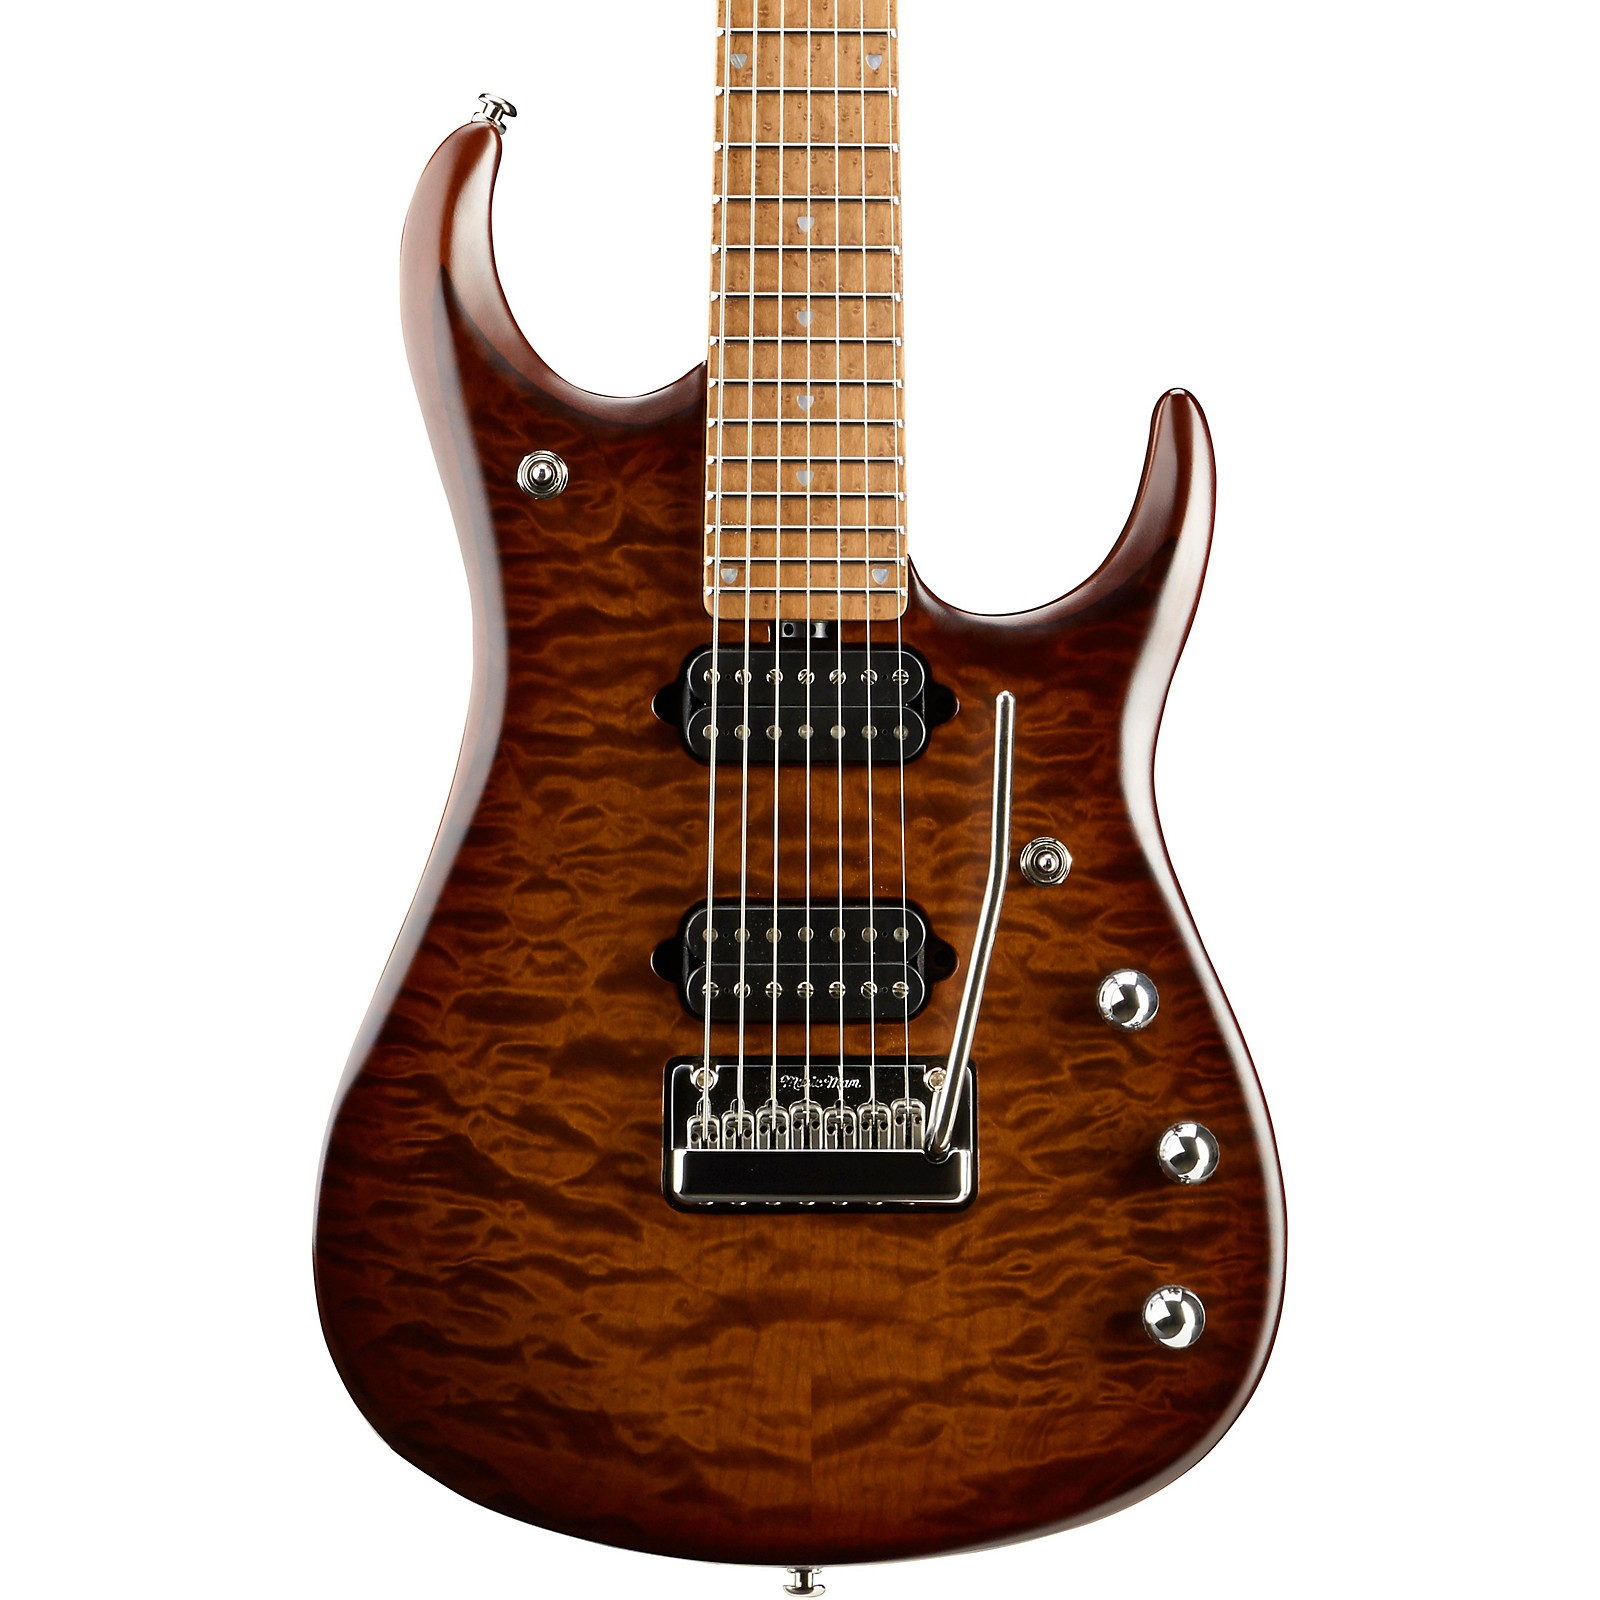 Ernie Ball Music Man JP15 Roasted Quilt Maple Top 7-String Electric Guitar